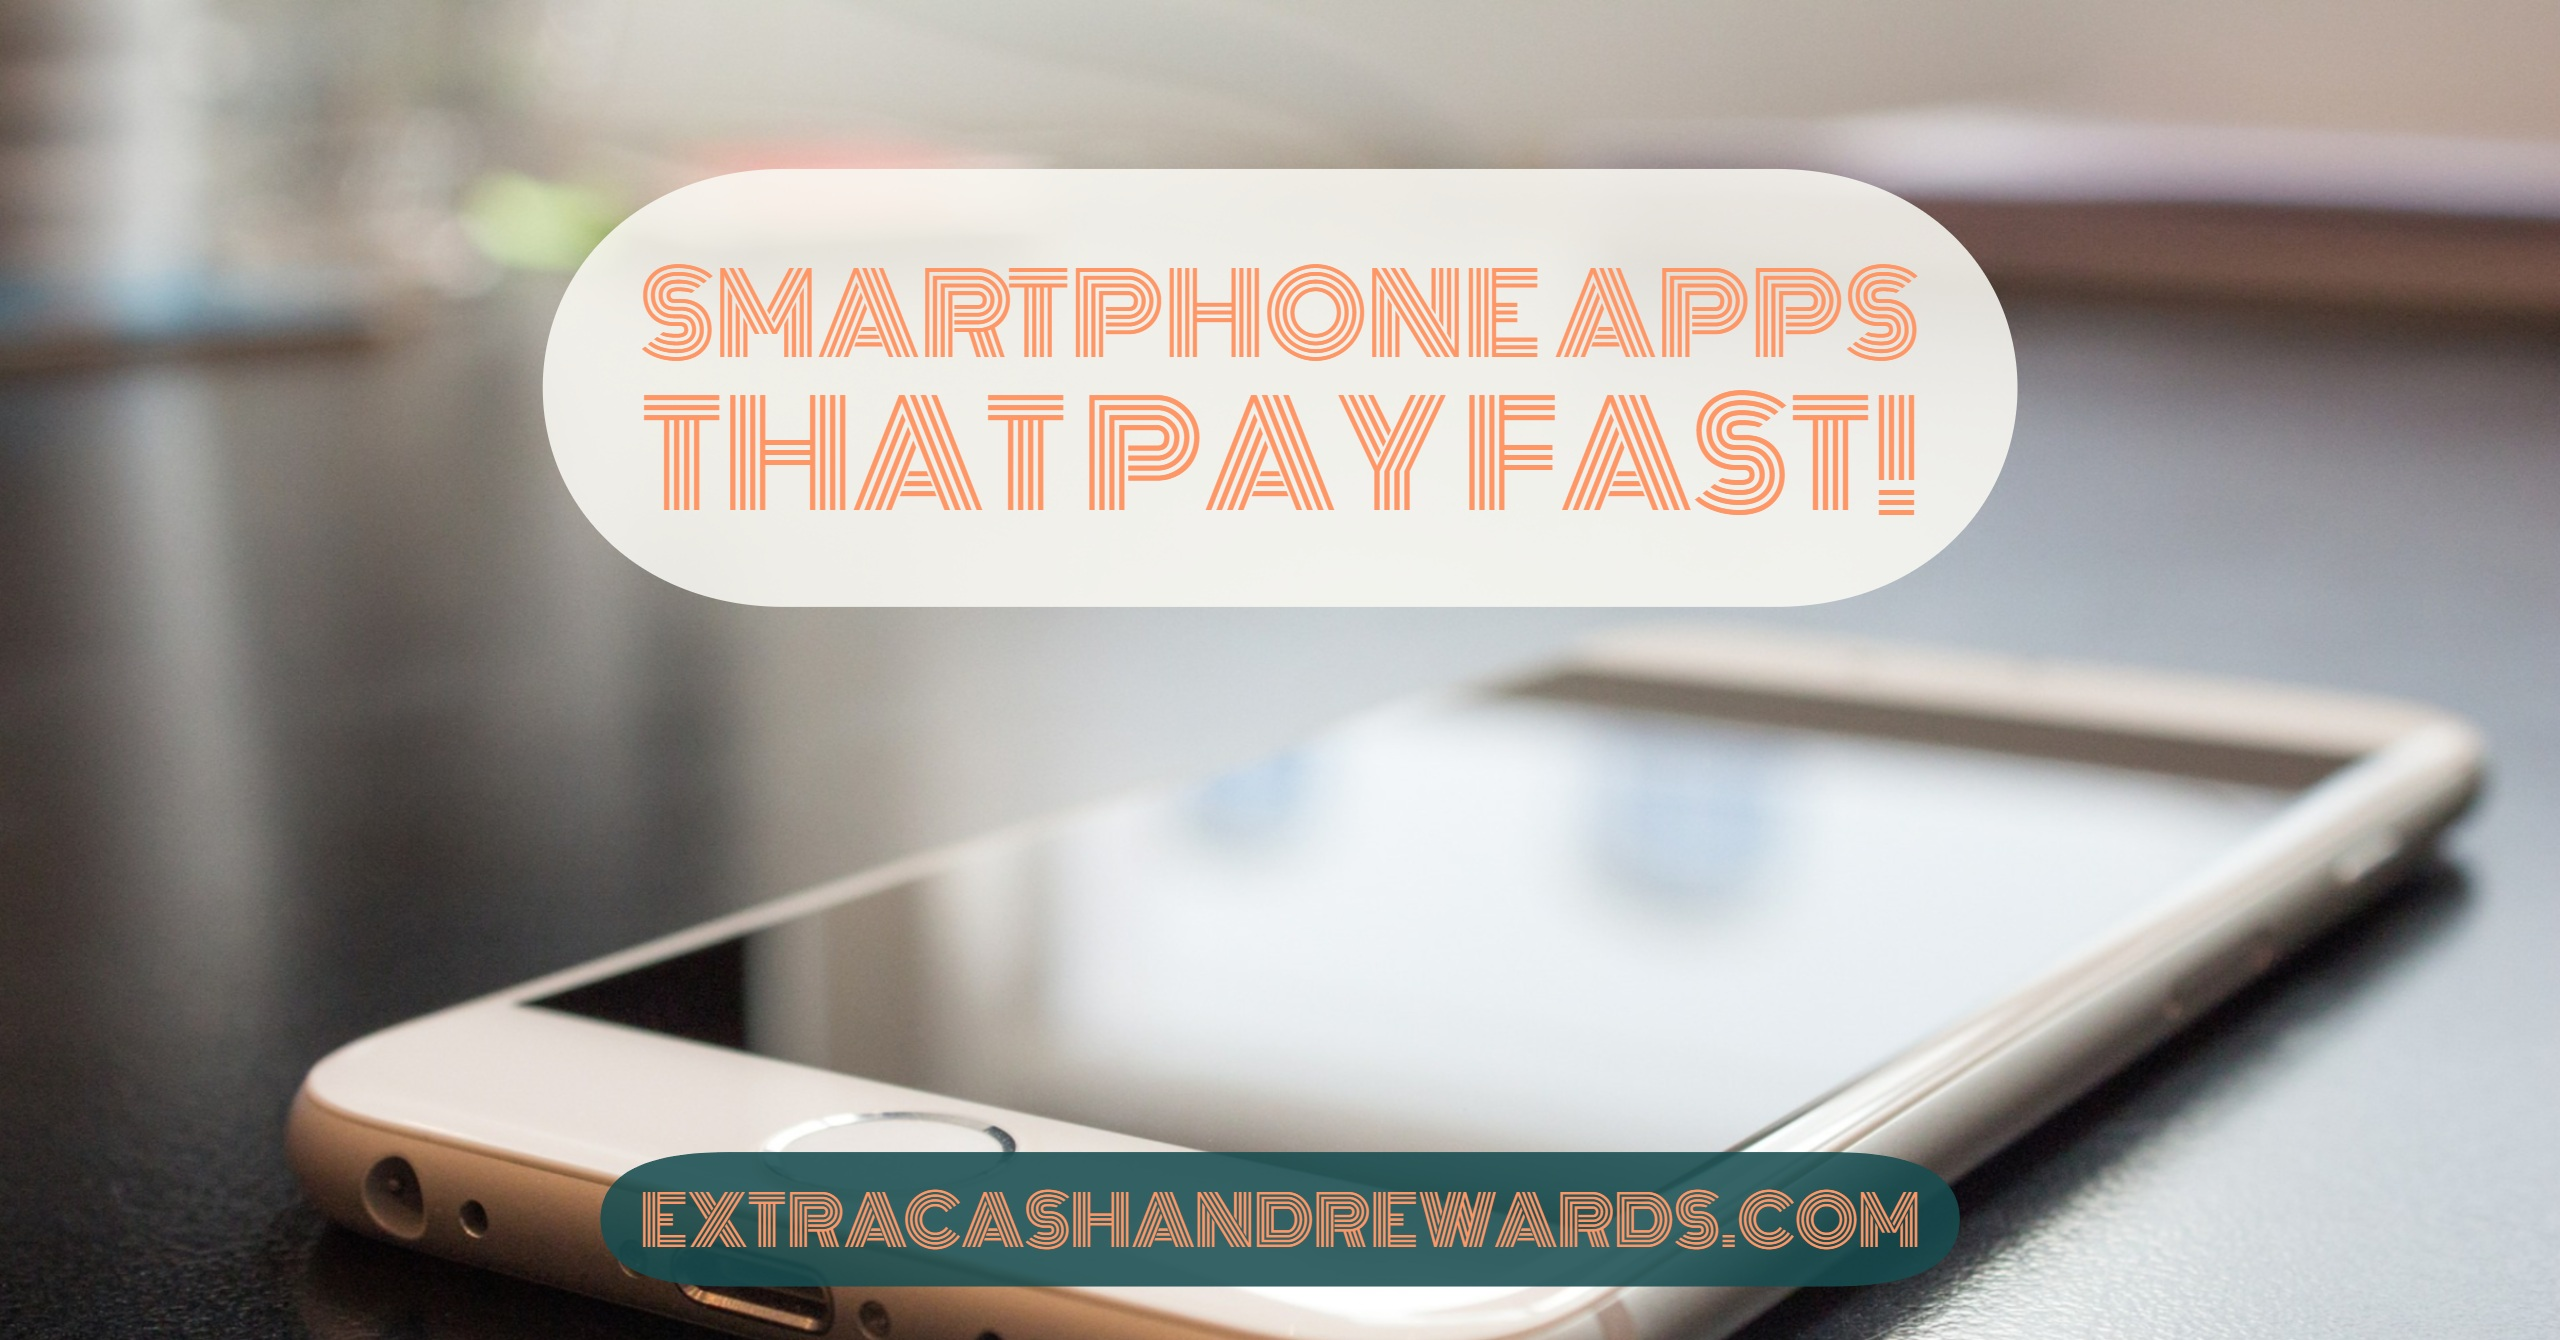 4 Smartphone Apps That Pay Real Cash Fast